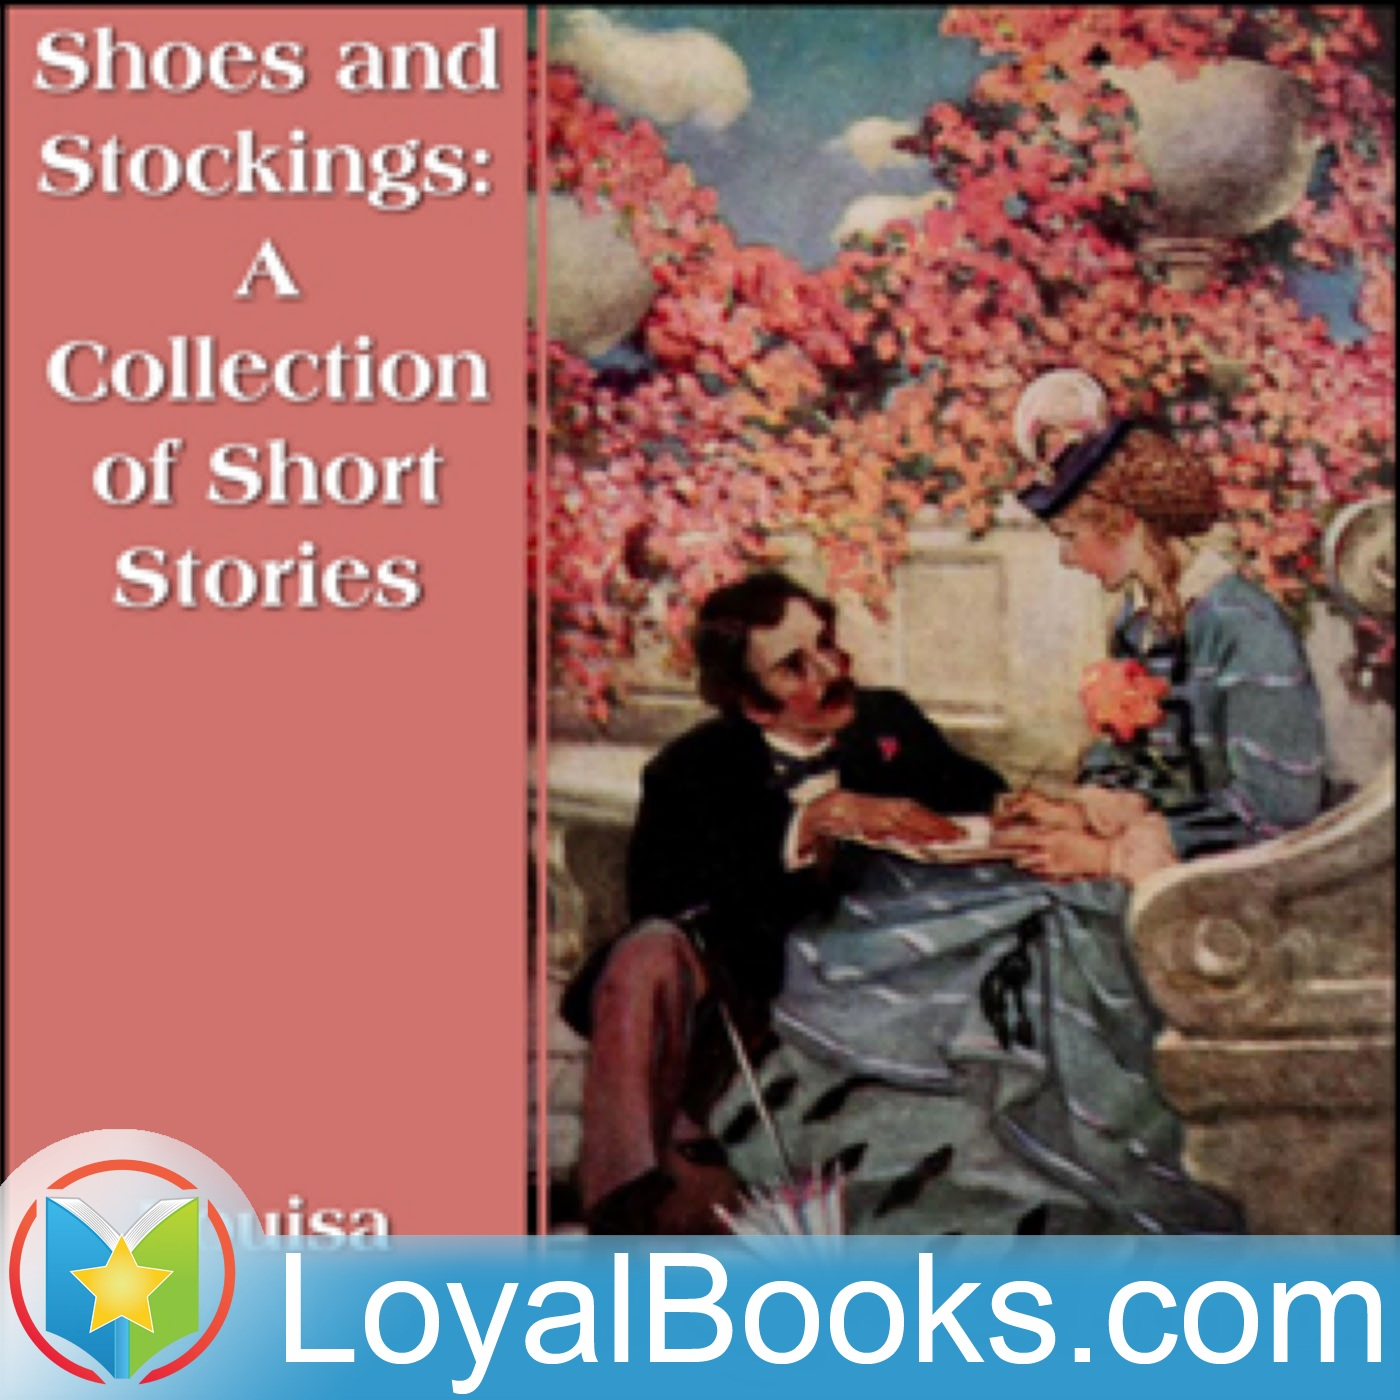 <![CDATA[Shoes and Stockings: A Collection of Short Stories by Louisa May Alcott]]>